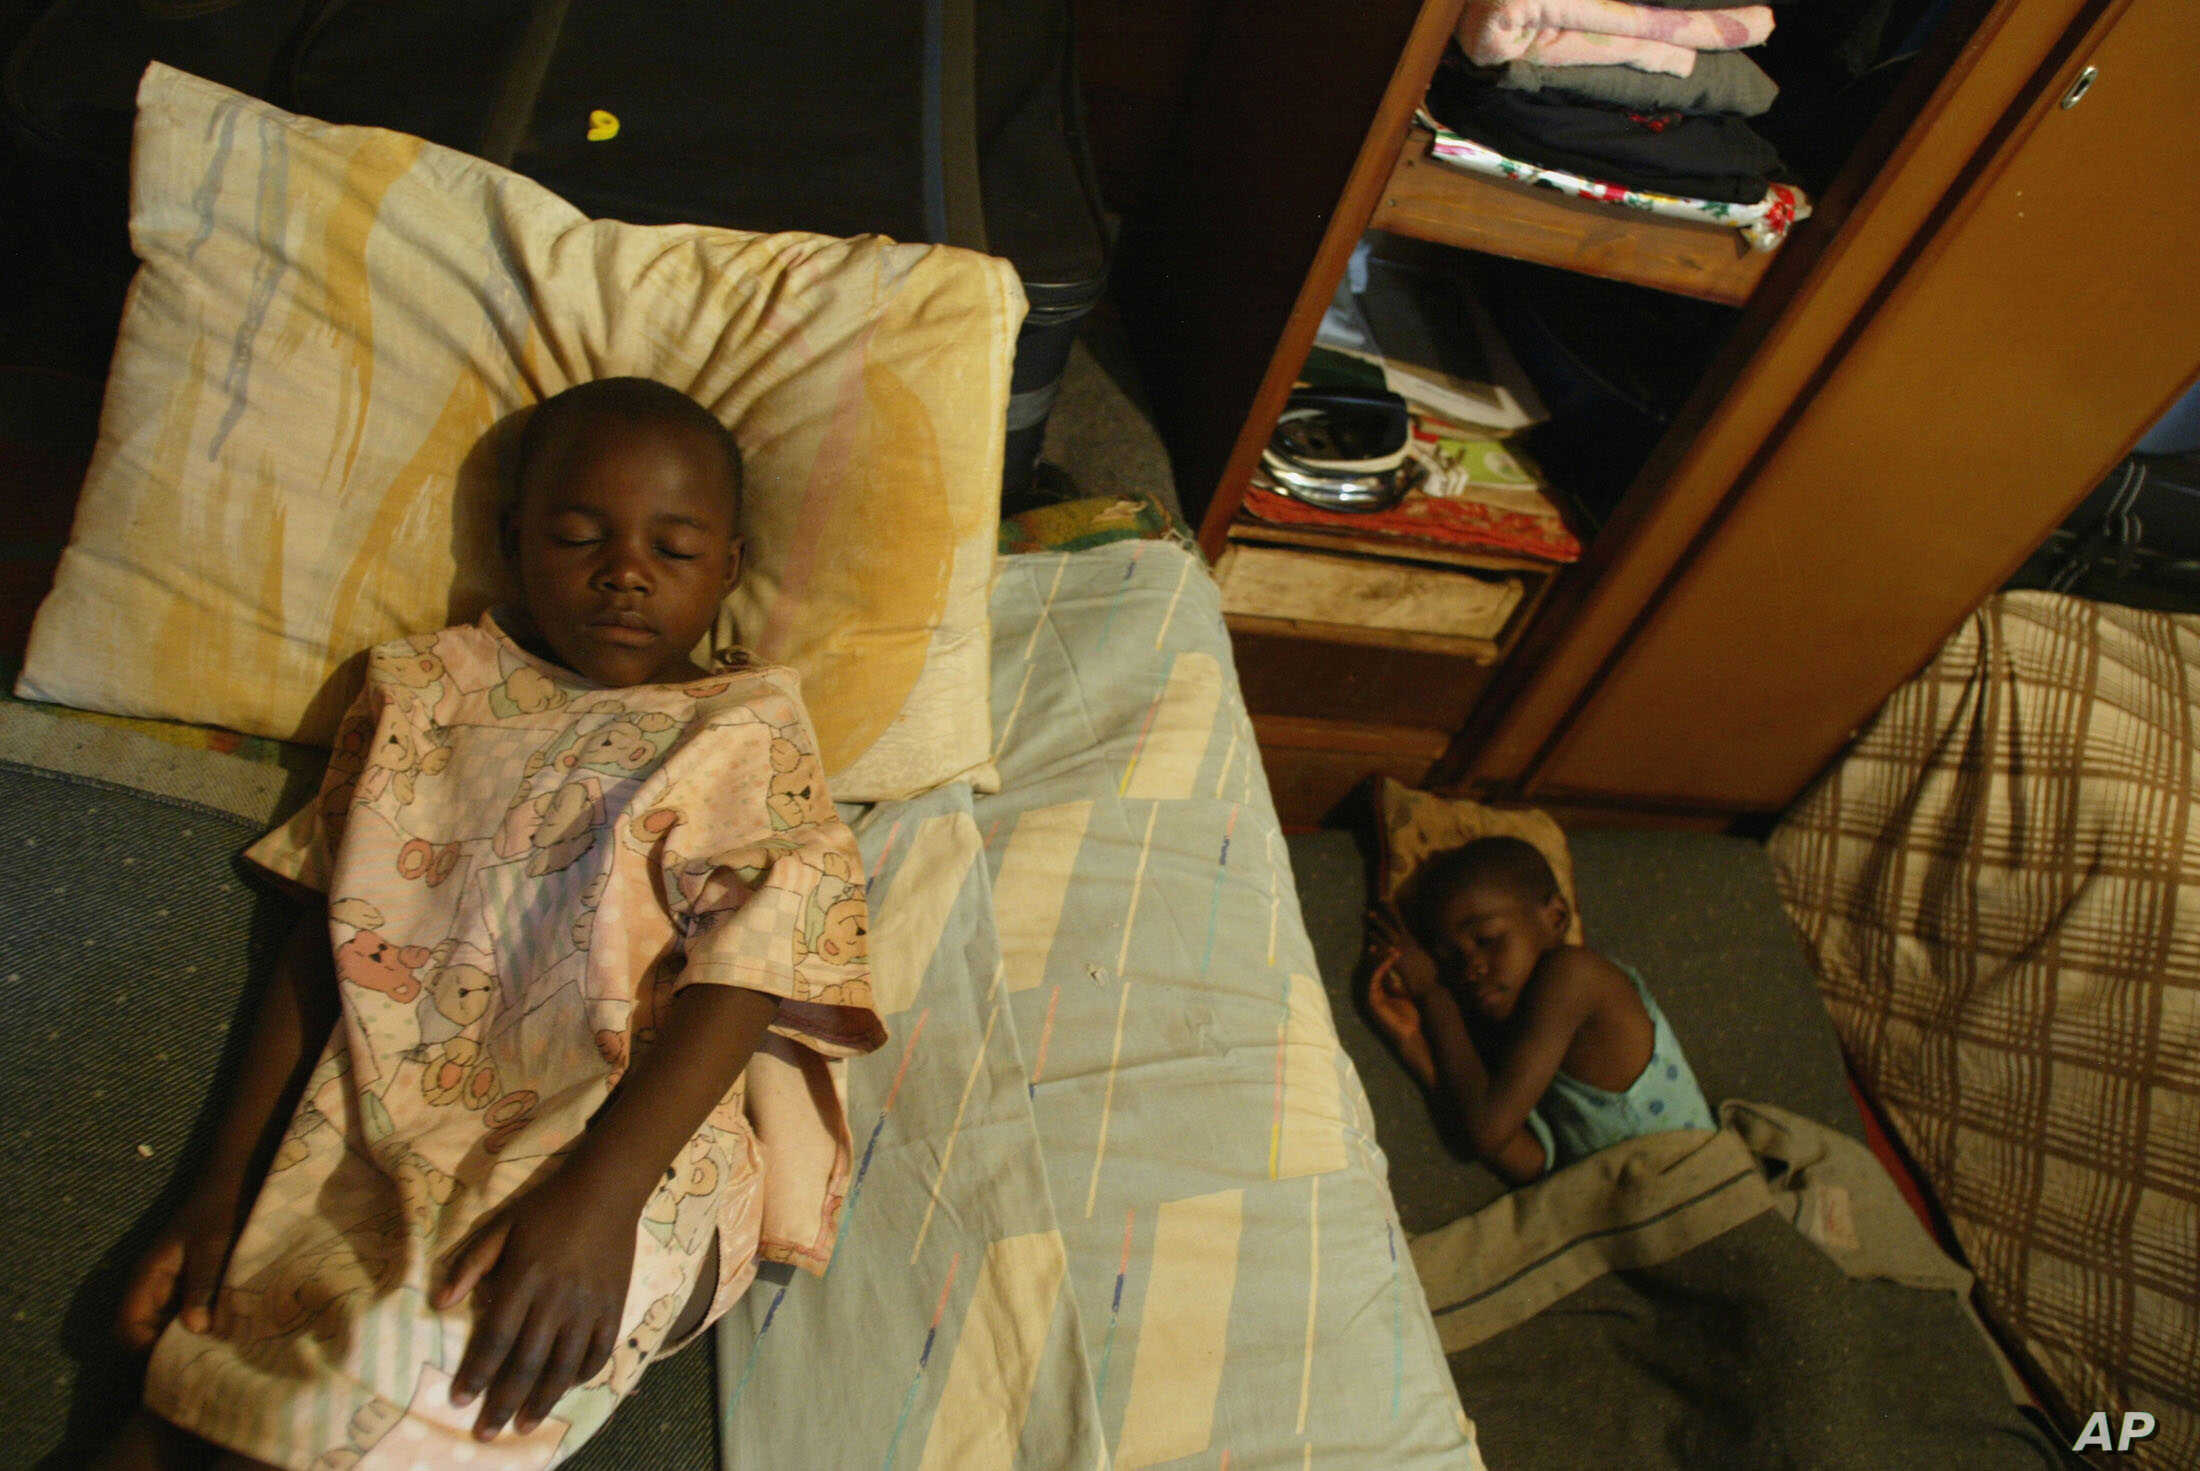 FILE - Children take an afternoon nap at an orphanage in Harare, Zimbabwe, May 26, 2006. One of the biggest problems caused by AIDS in Africa is the number of children who are being orphaned as the disease kills their parents and guardians.